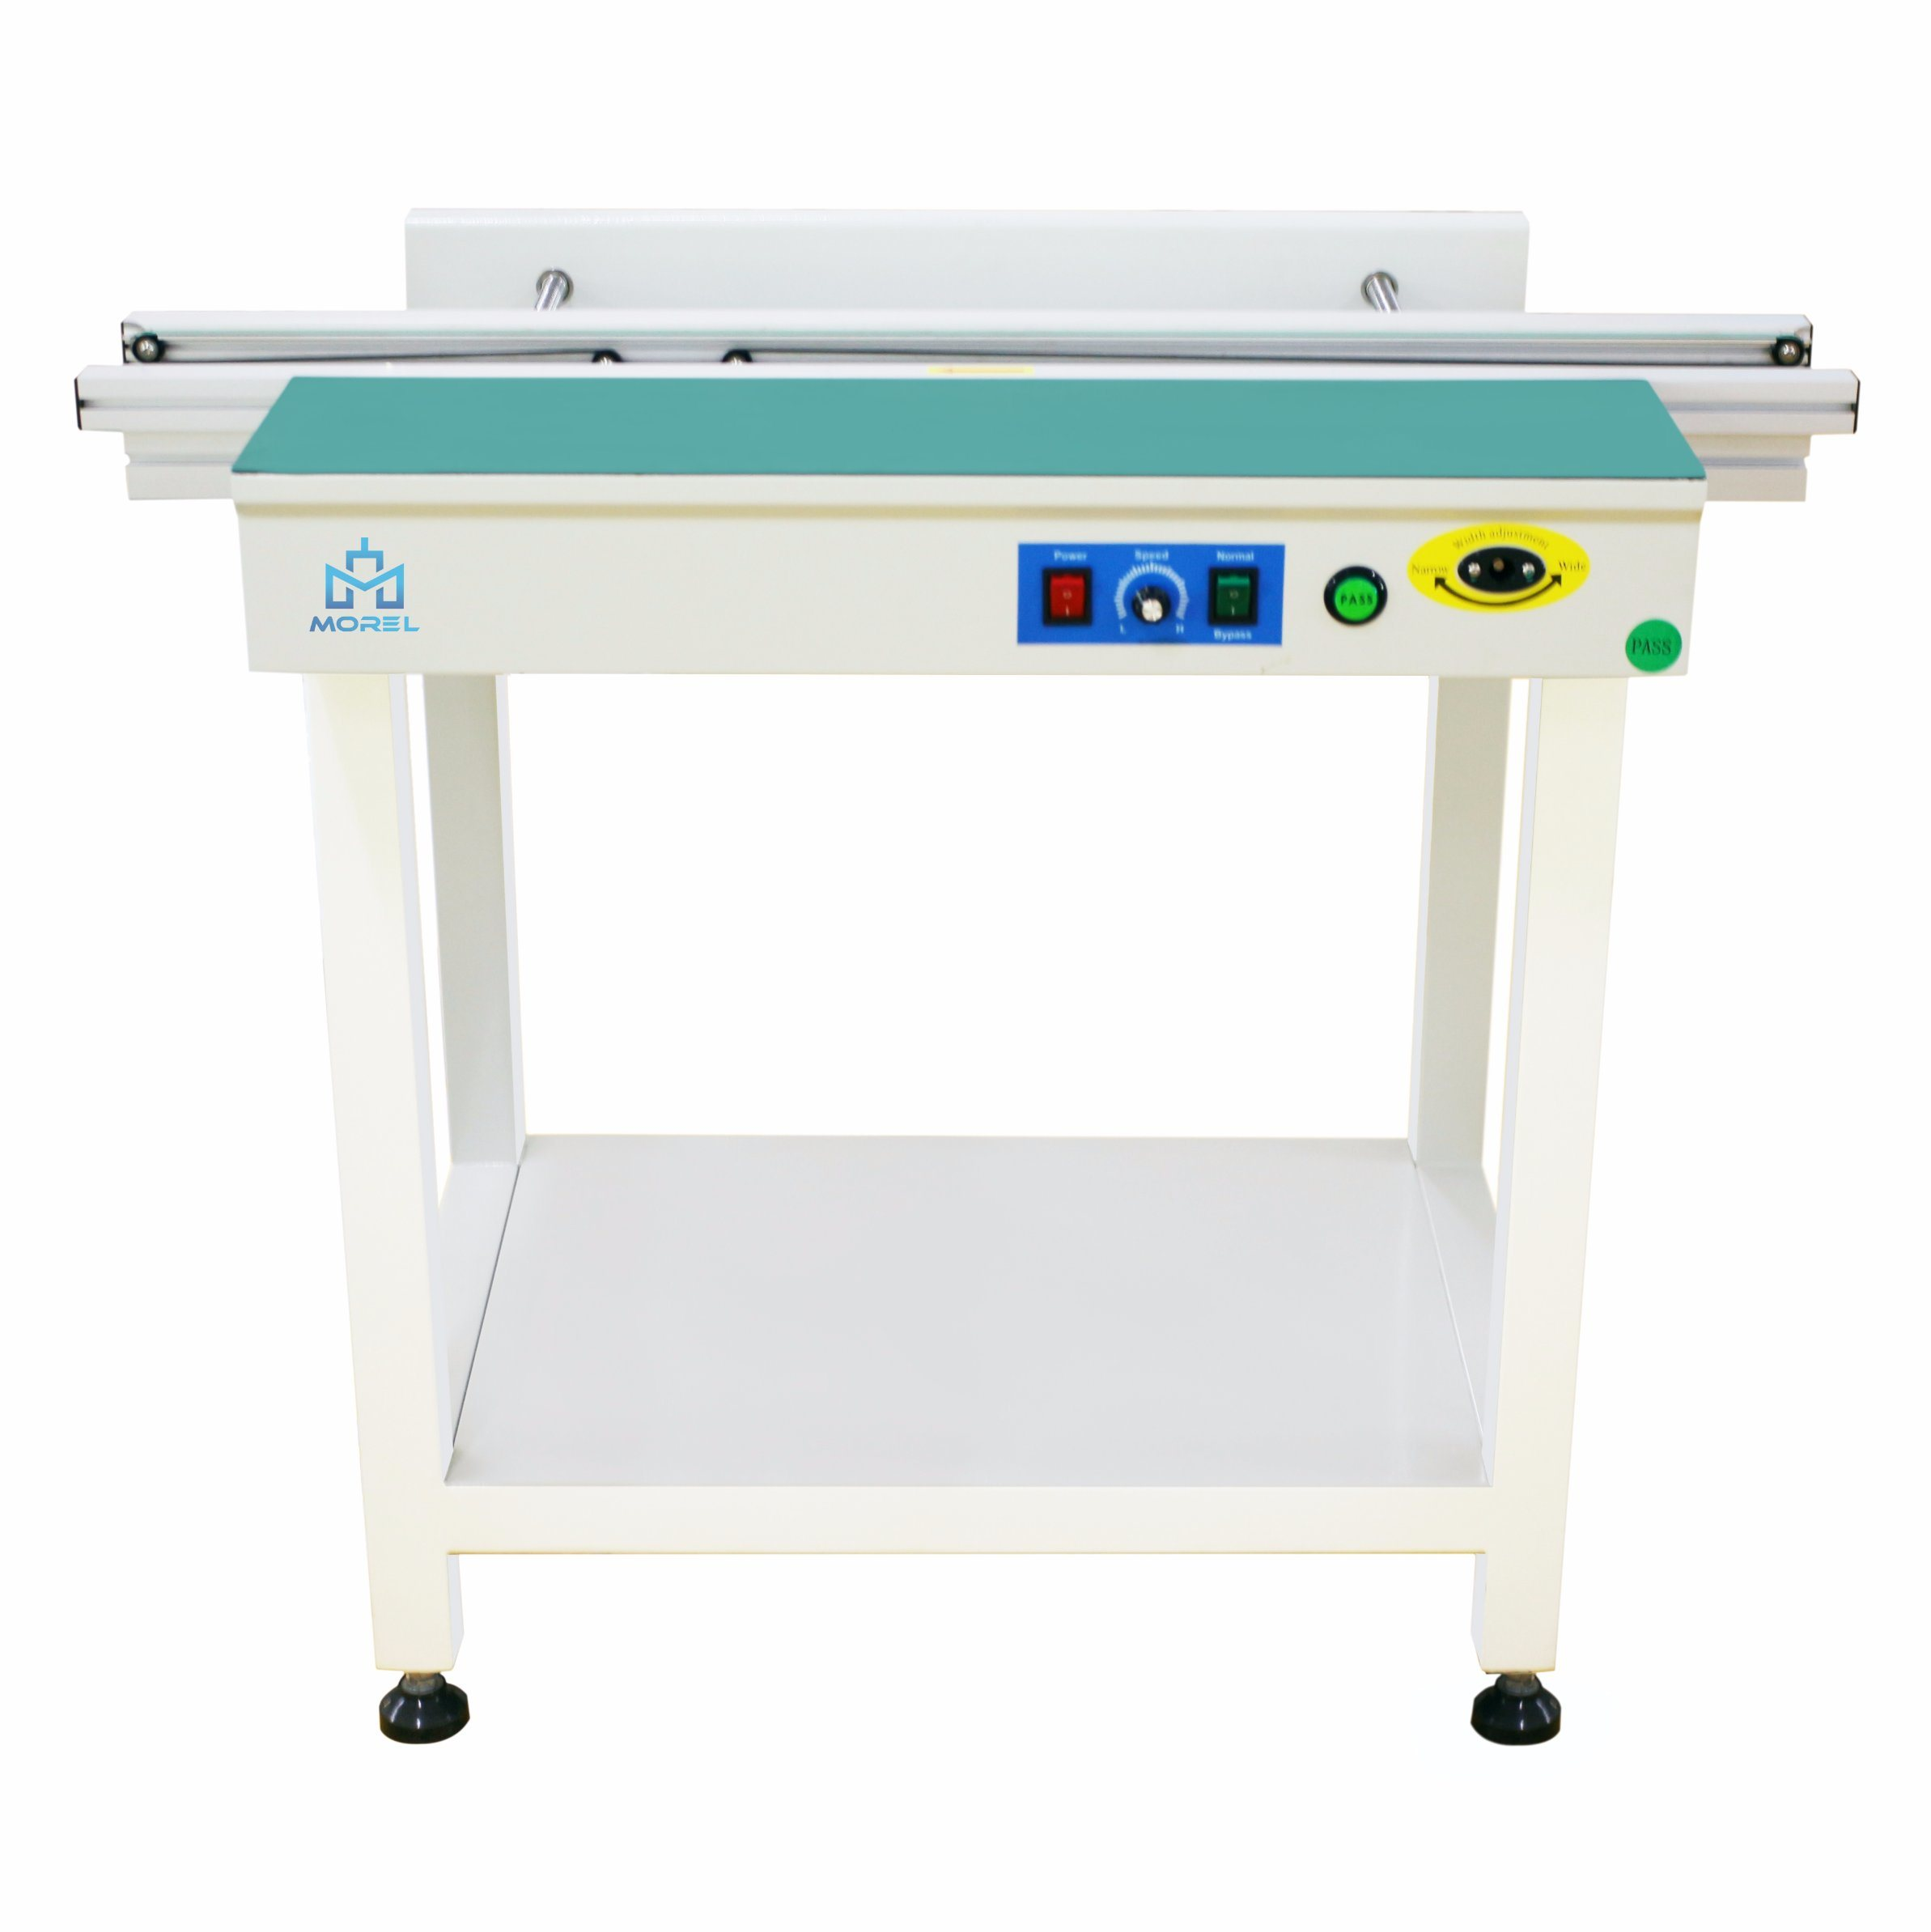 China Smt Assembly Line Inspection Station 800mm Pcb Conveyor Bc Vcut Cutting Machine From Electronics Electrical Supplier 080m N